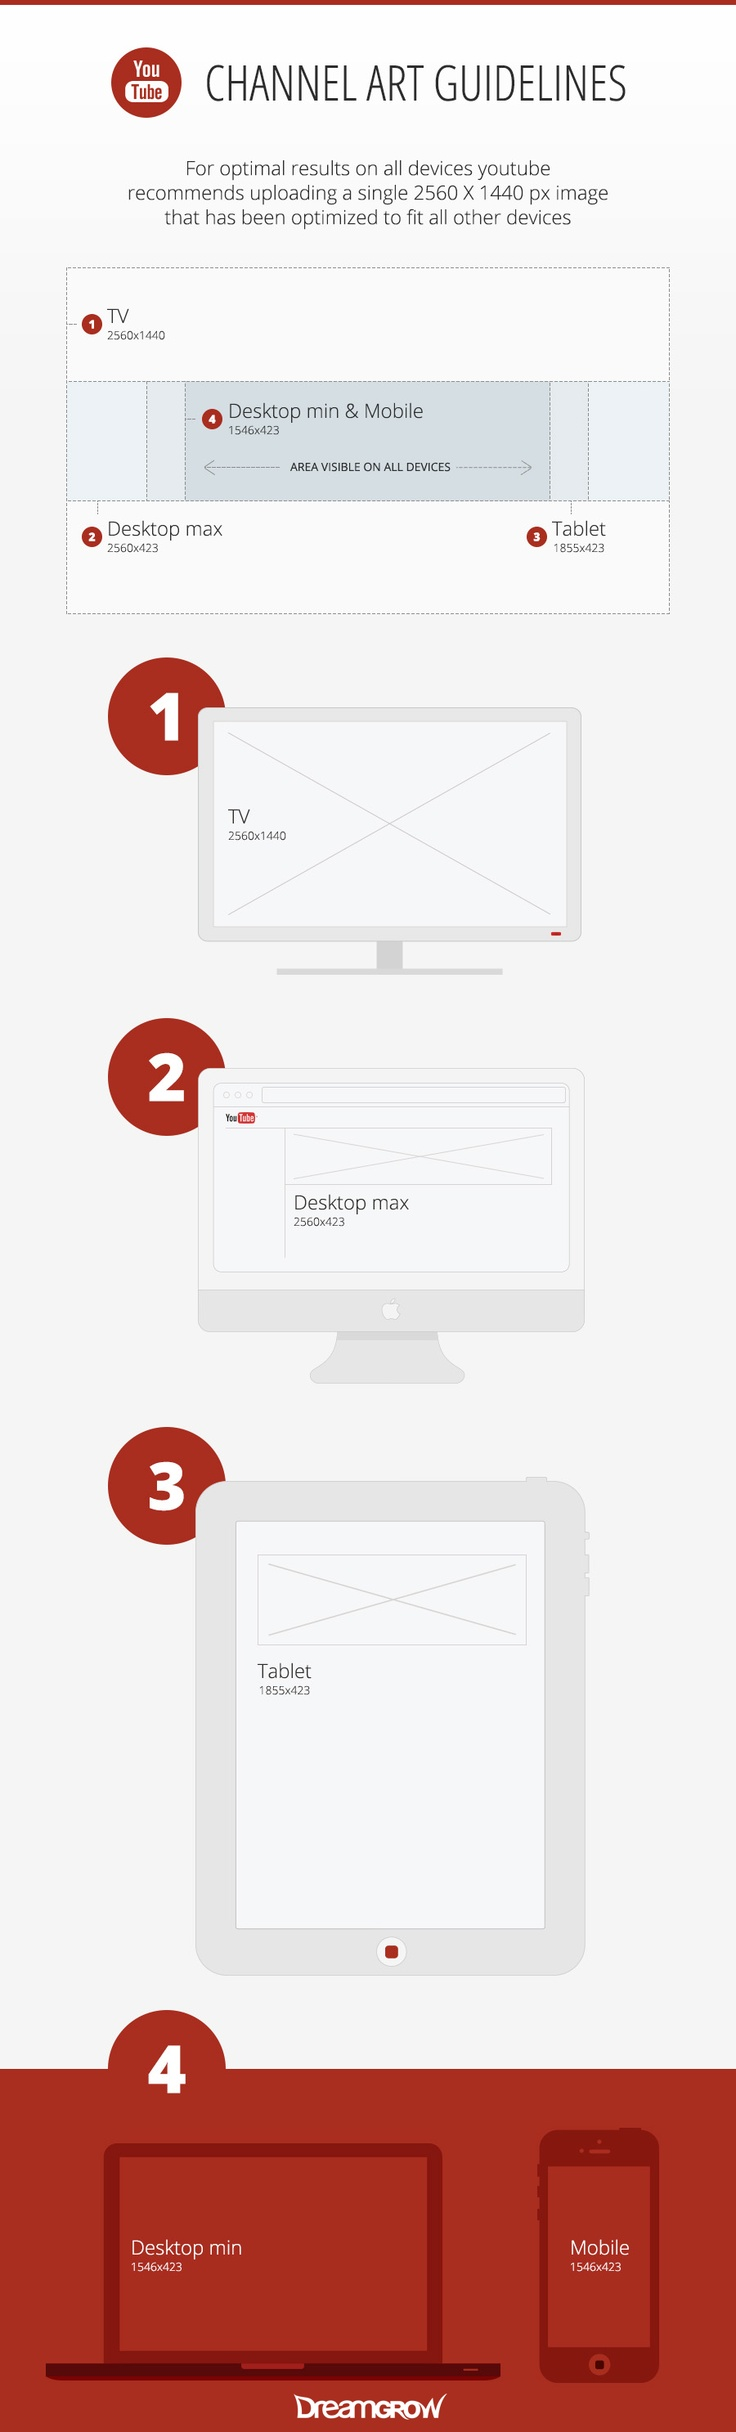 #Youtube Channel View Changes [INFOGRAPHIC]